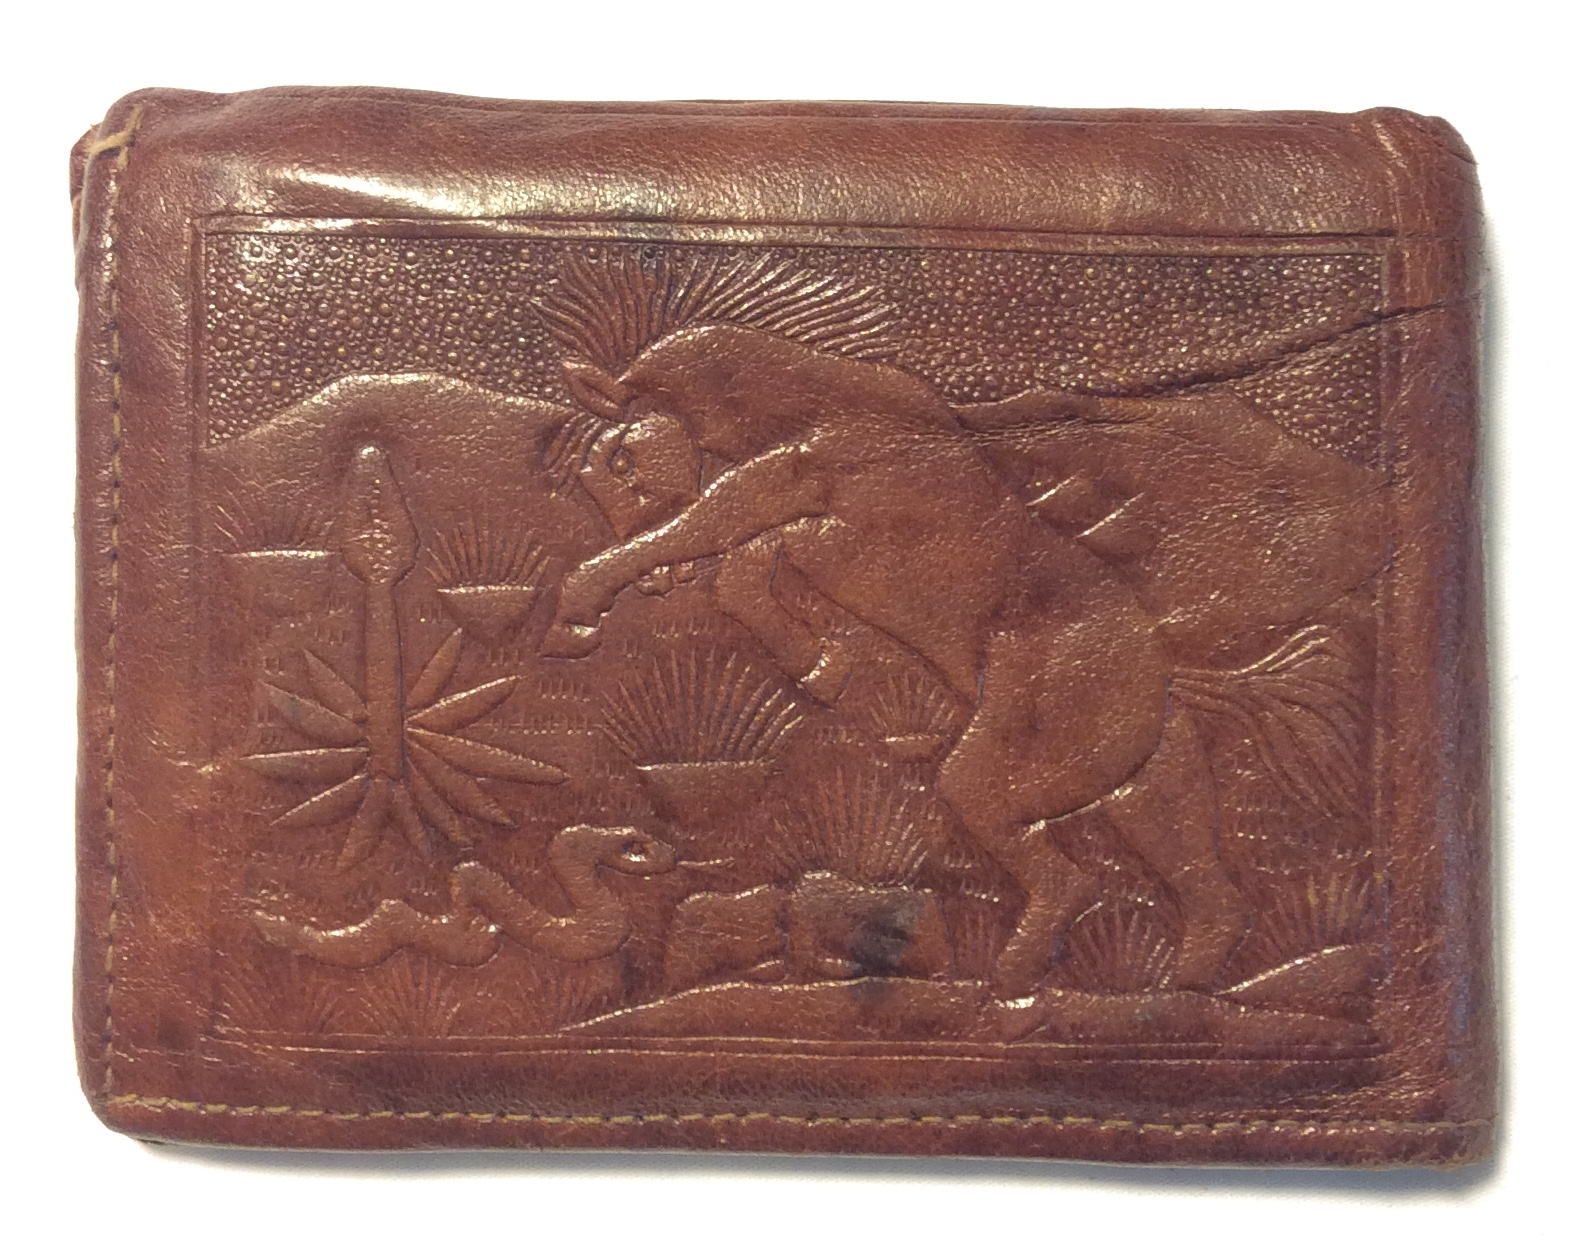 Made in Mexico Dark brown leather